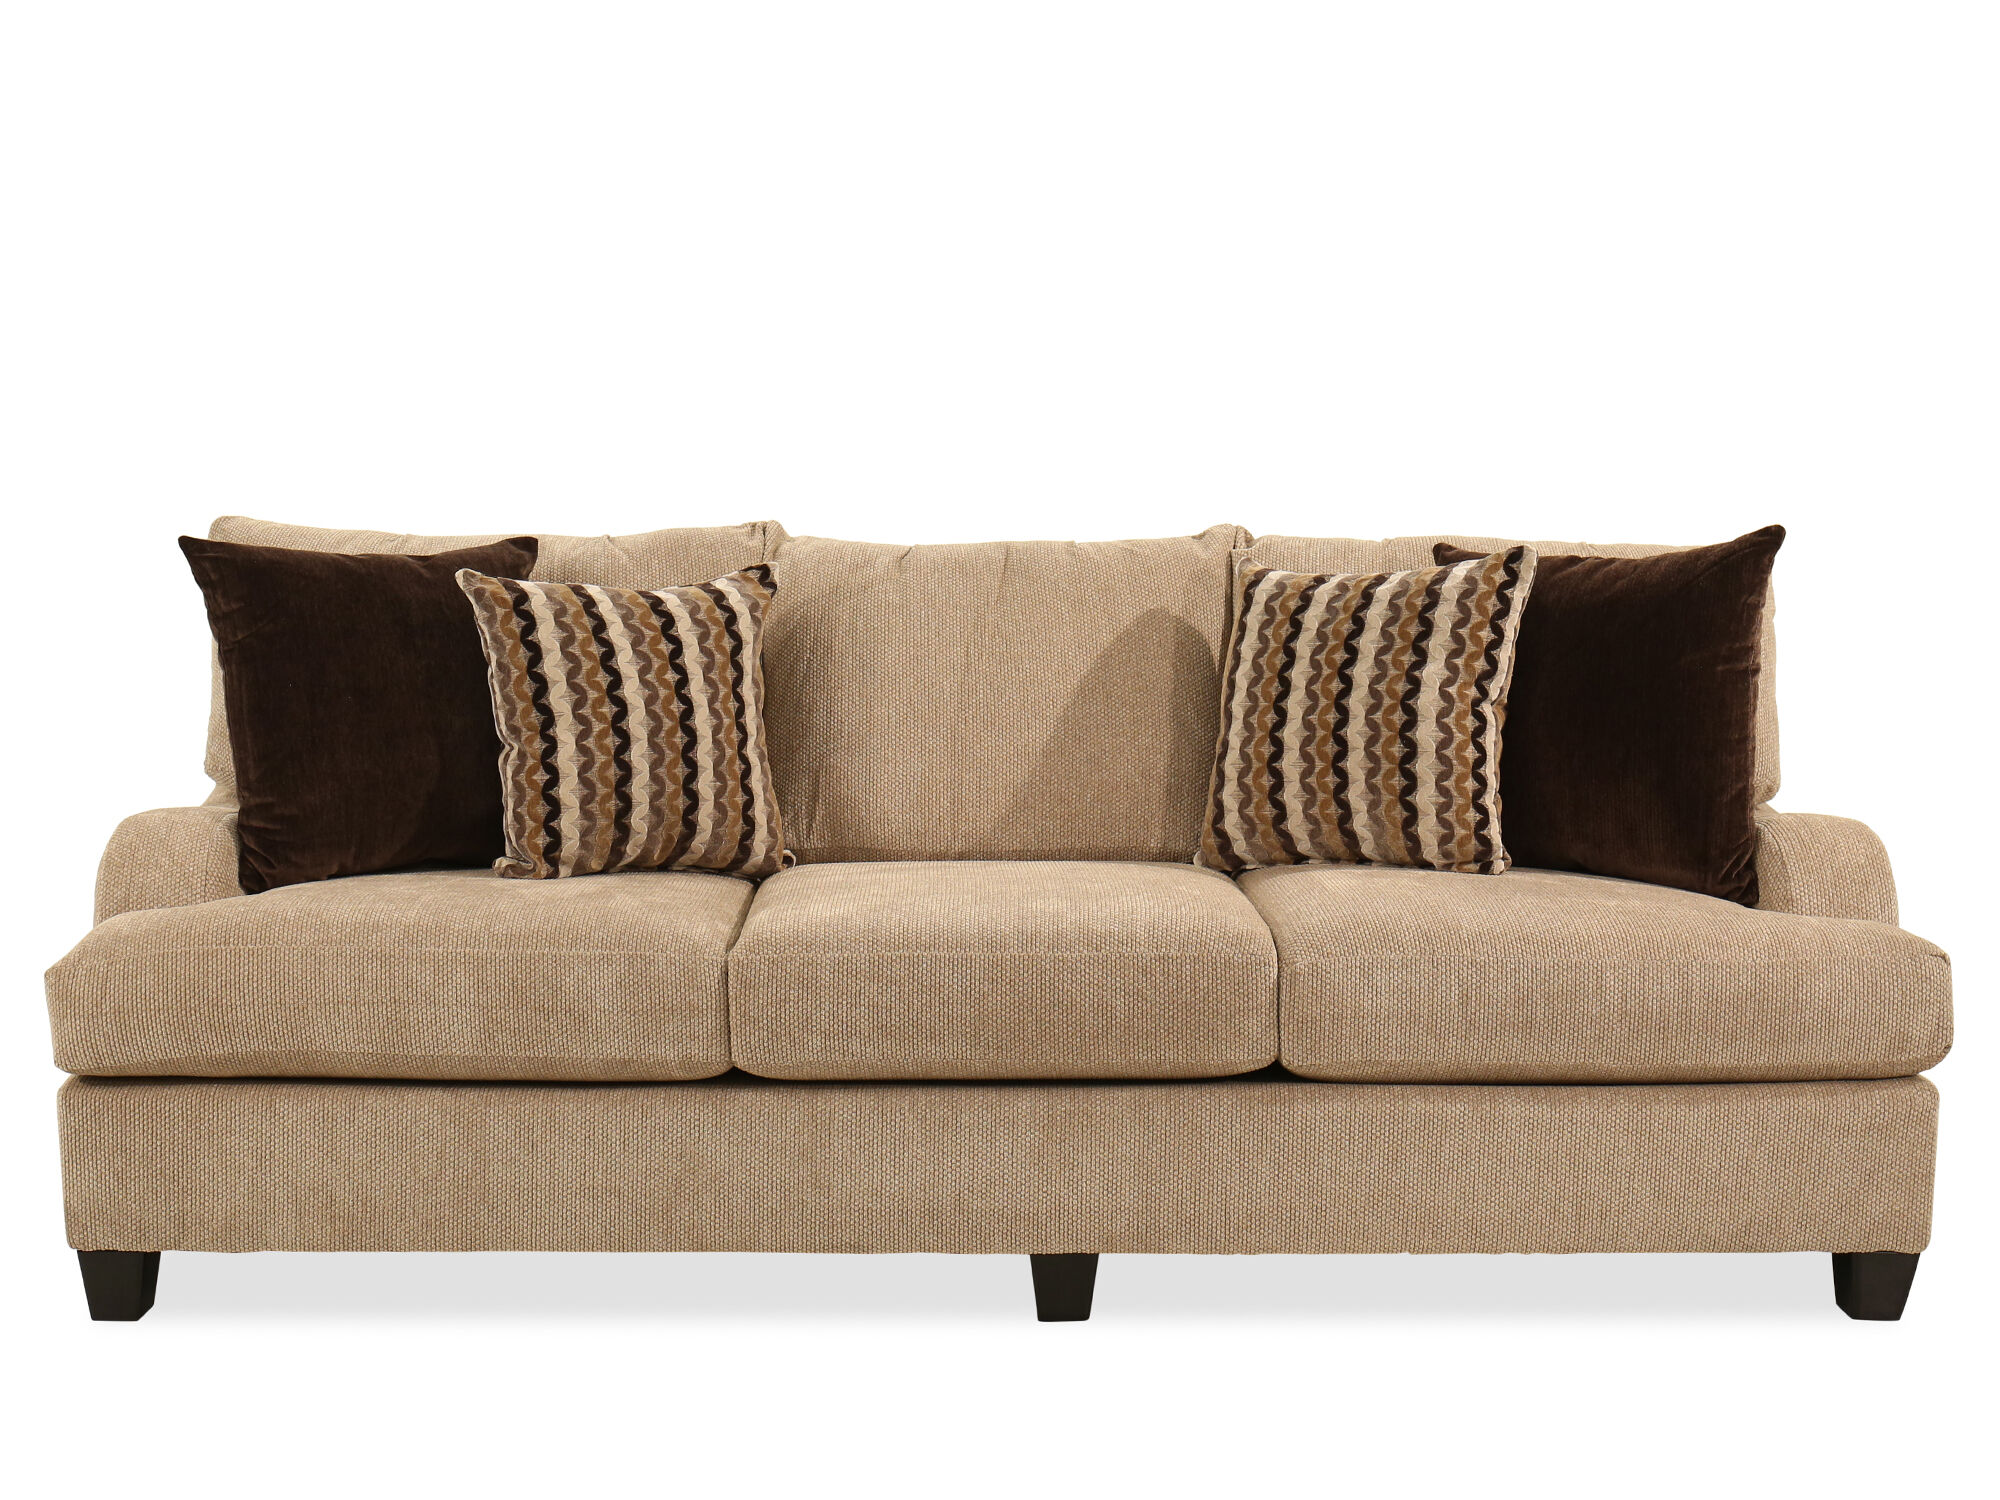 cloud track arm leather two seat cushion sofa simple sofas couches mathis brothers furniture stores 97 quot transitional